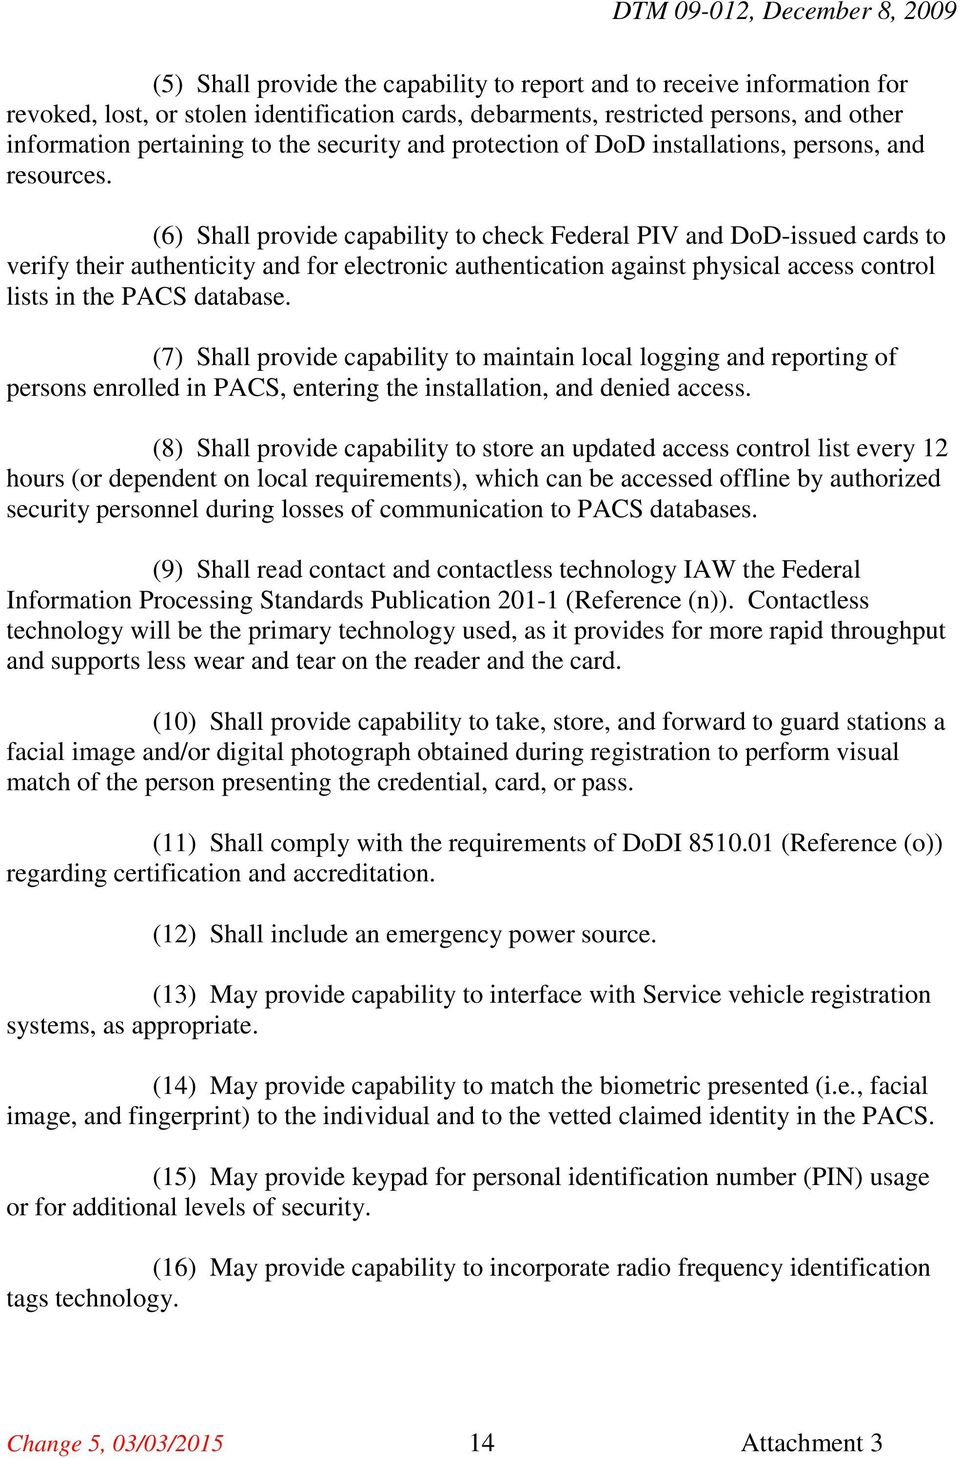 (6) Shall provide capability to check Federal PIV and DoD-issued cards to verify their authenticity and for electronic authentication against physical access control lists in the PACS database.